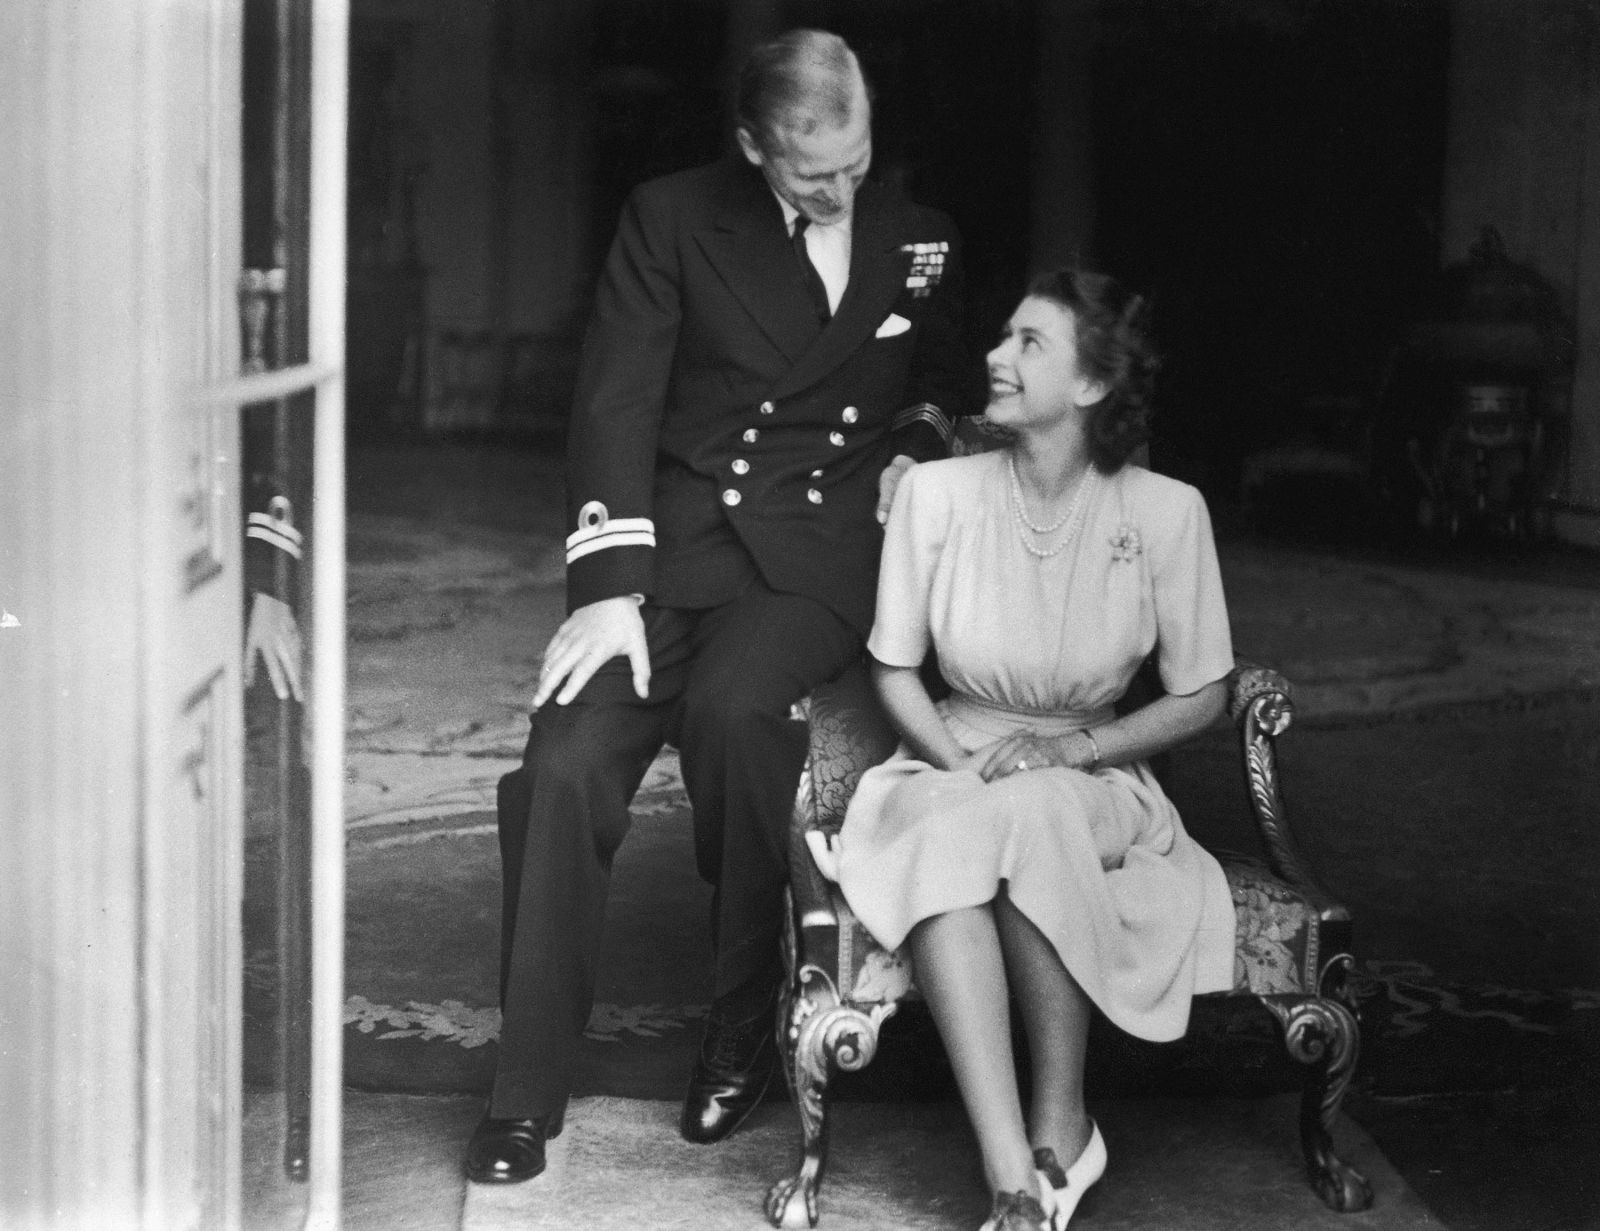 Prince Philip sits with his fiancee, Princess Elizabeth, in July 1947. He had become a naturalized British citizen and a commoner, using the surname Mountbatten, an English translation of his mother's maiden name. He was also an officer in the British Royal Navy and fought in World War II.